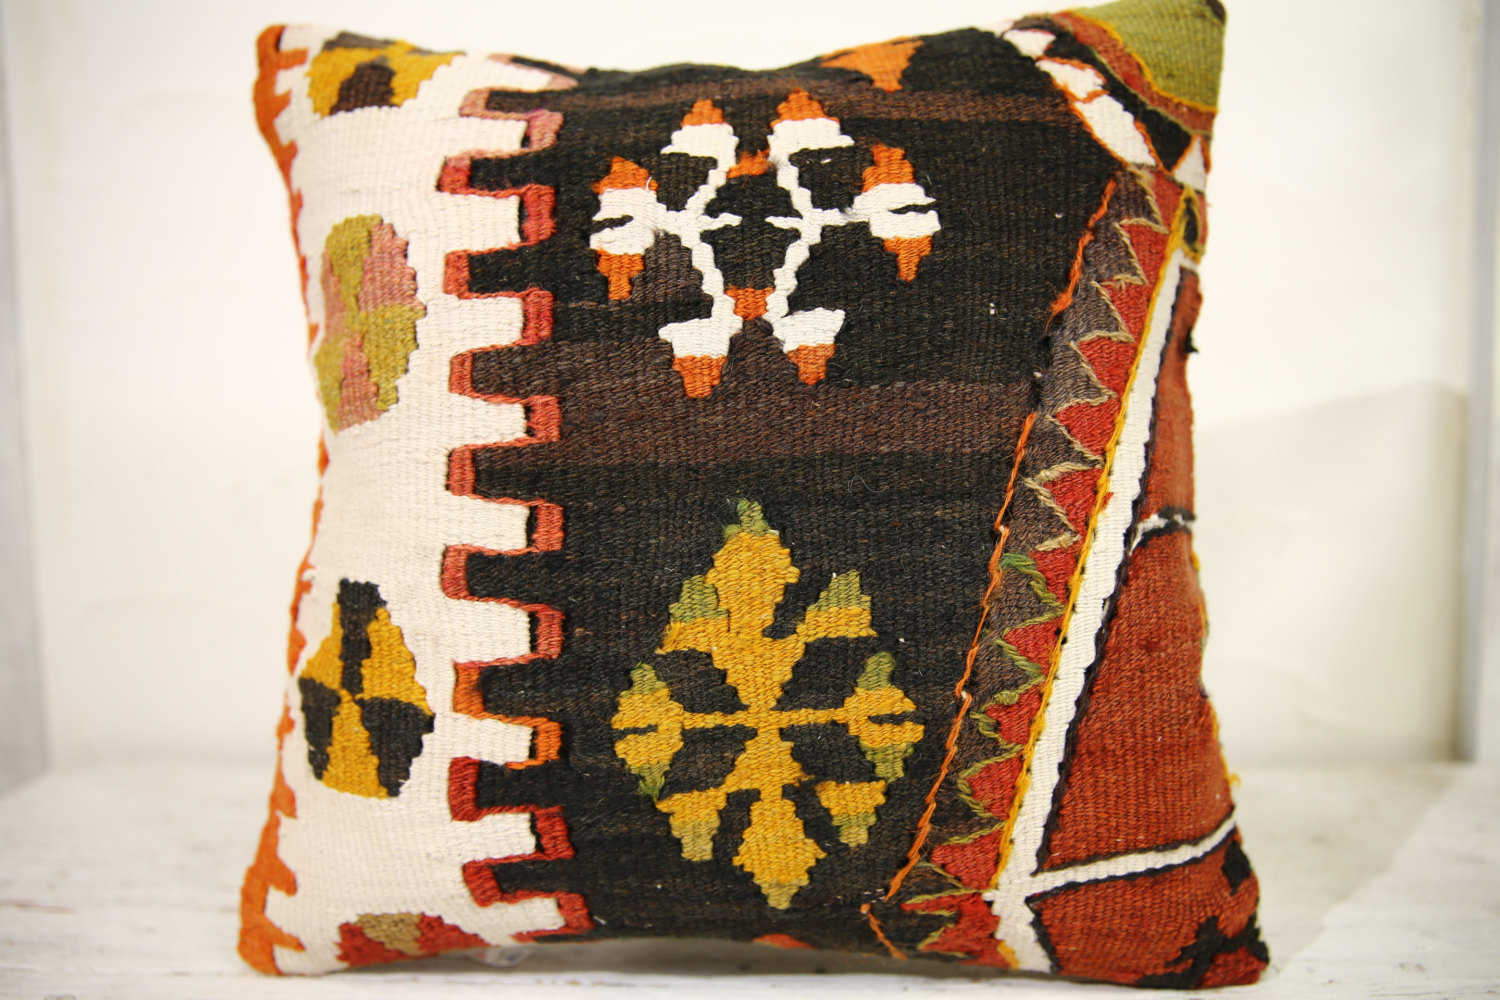 Kilim Pillows | 16x16 | Decorative Pillows | 866 | Accent Pillows,turkish pillow